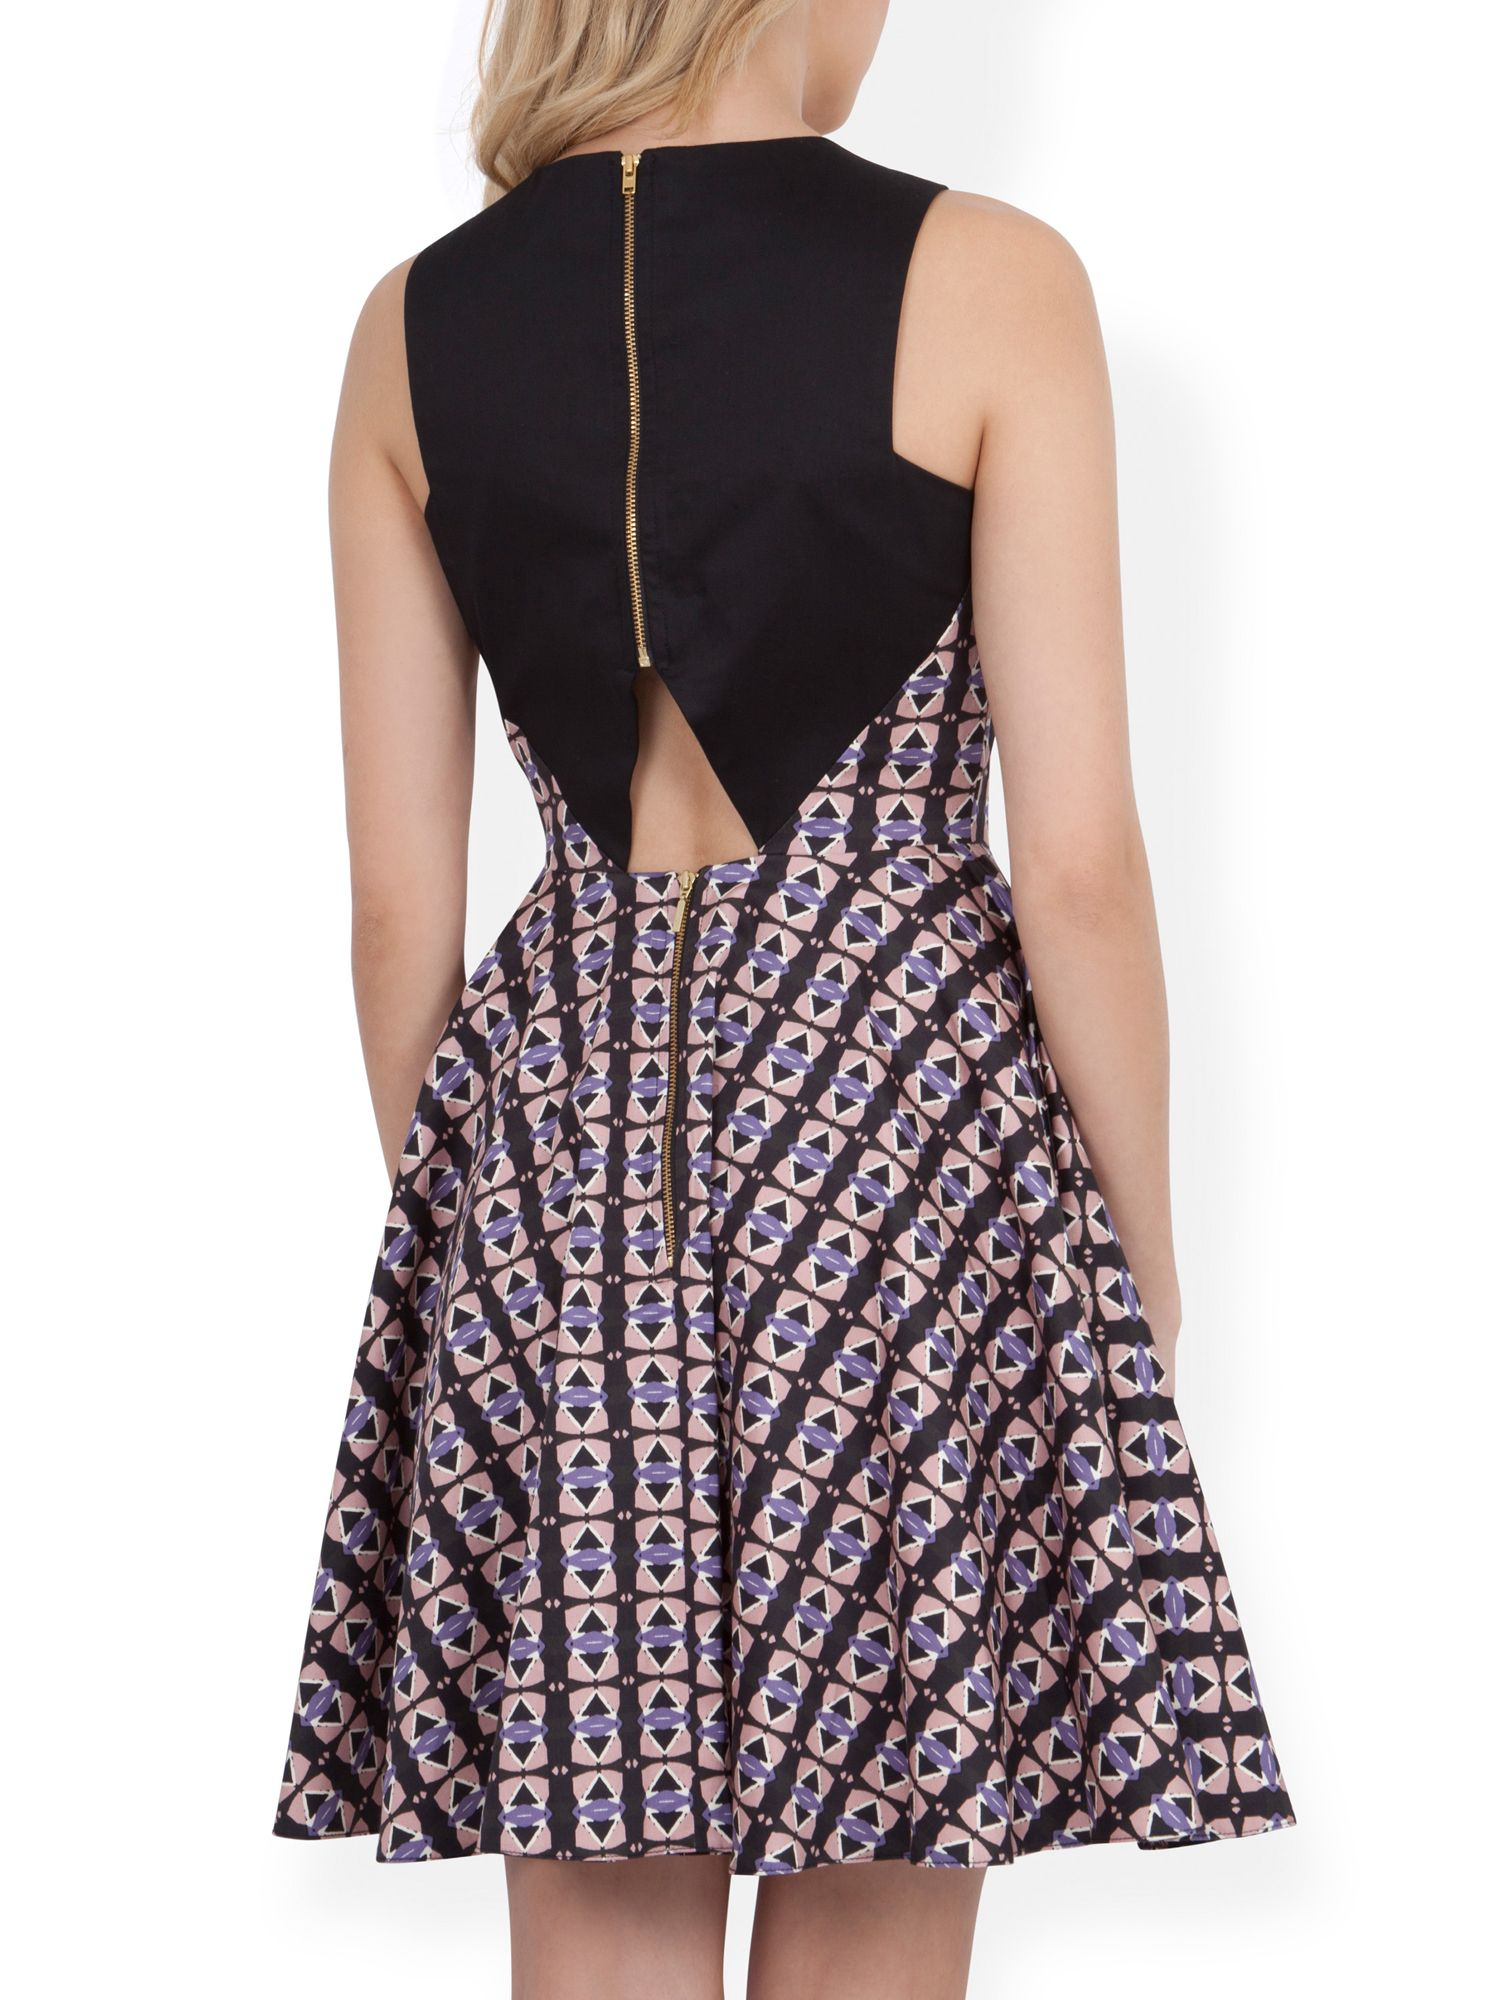 Closet triangle cut out back dress - Gallery